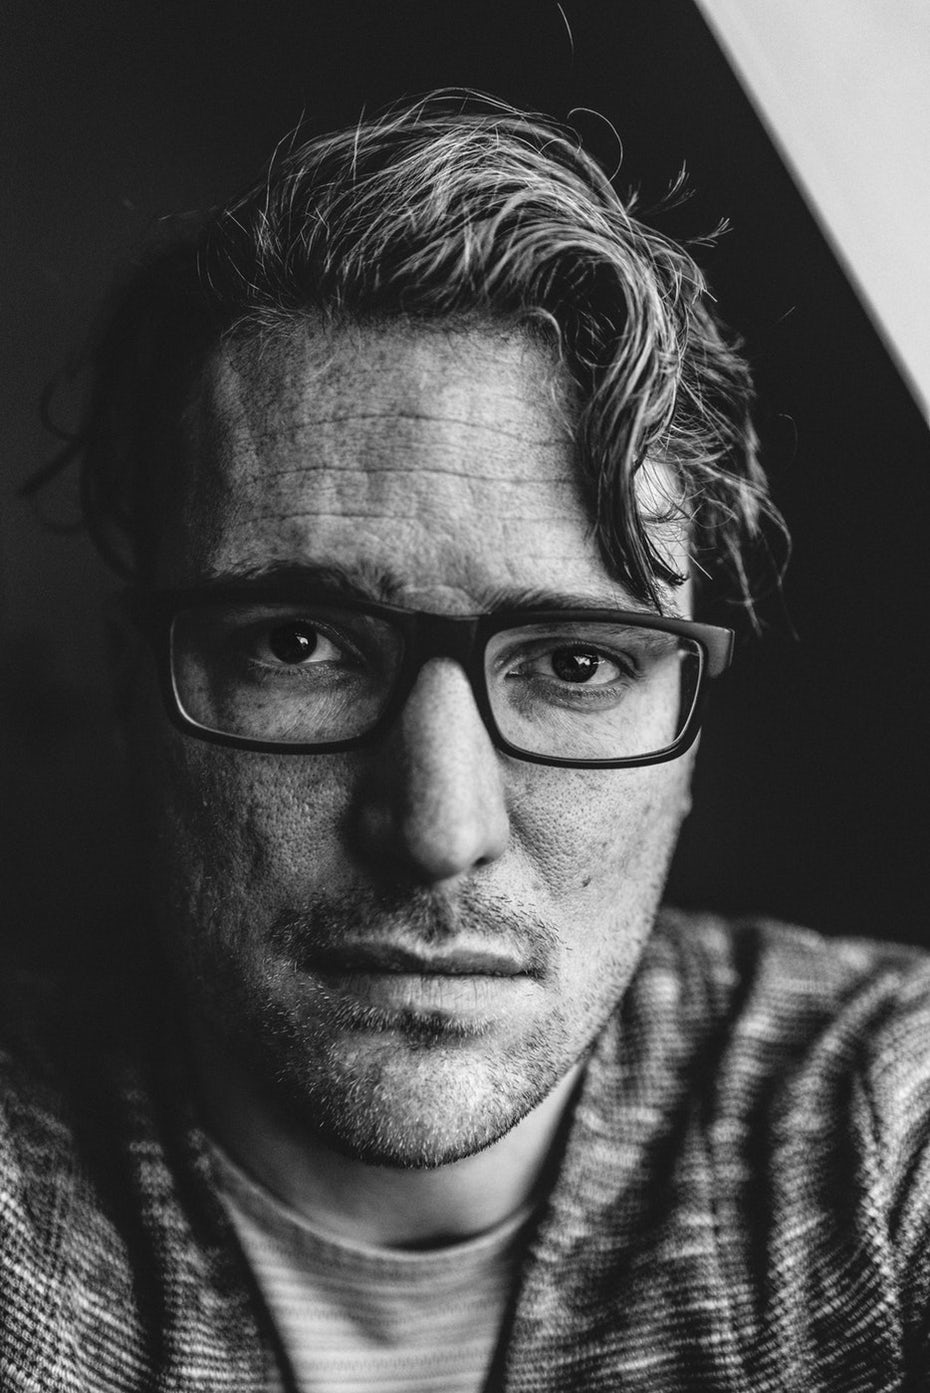 Headshot of man with glasses